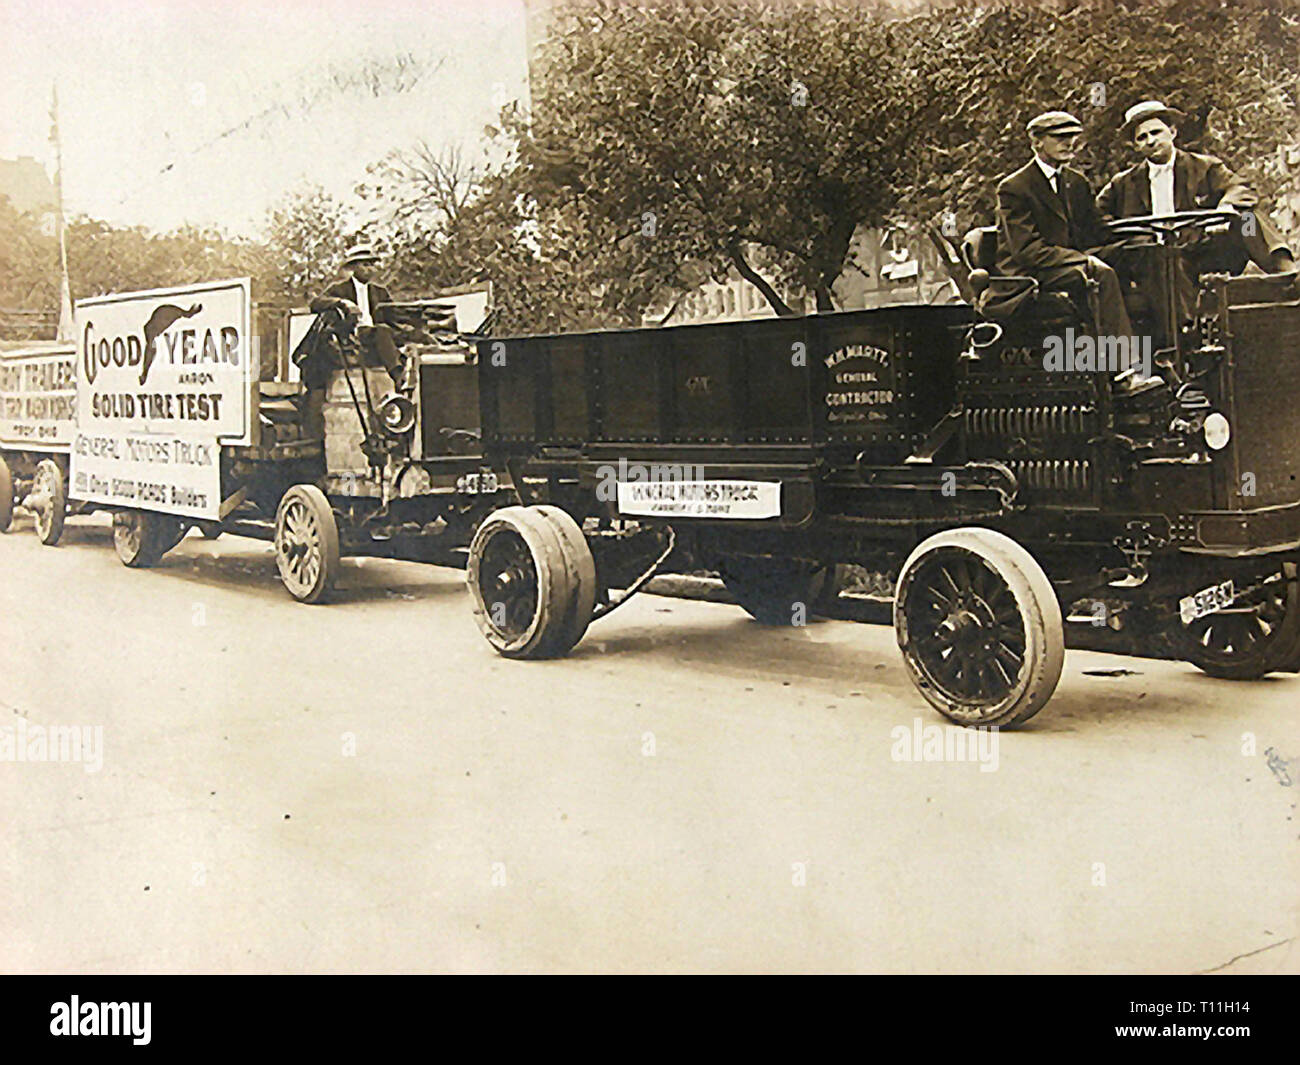 Photos of early America-Goodyear Solid Tire Testing on General Motors trucks. Stock Photo